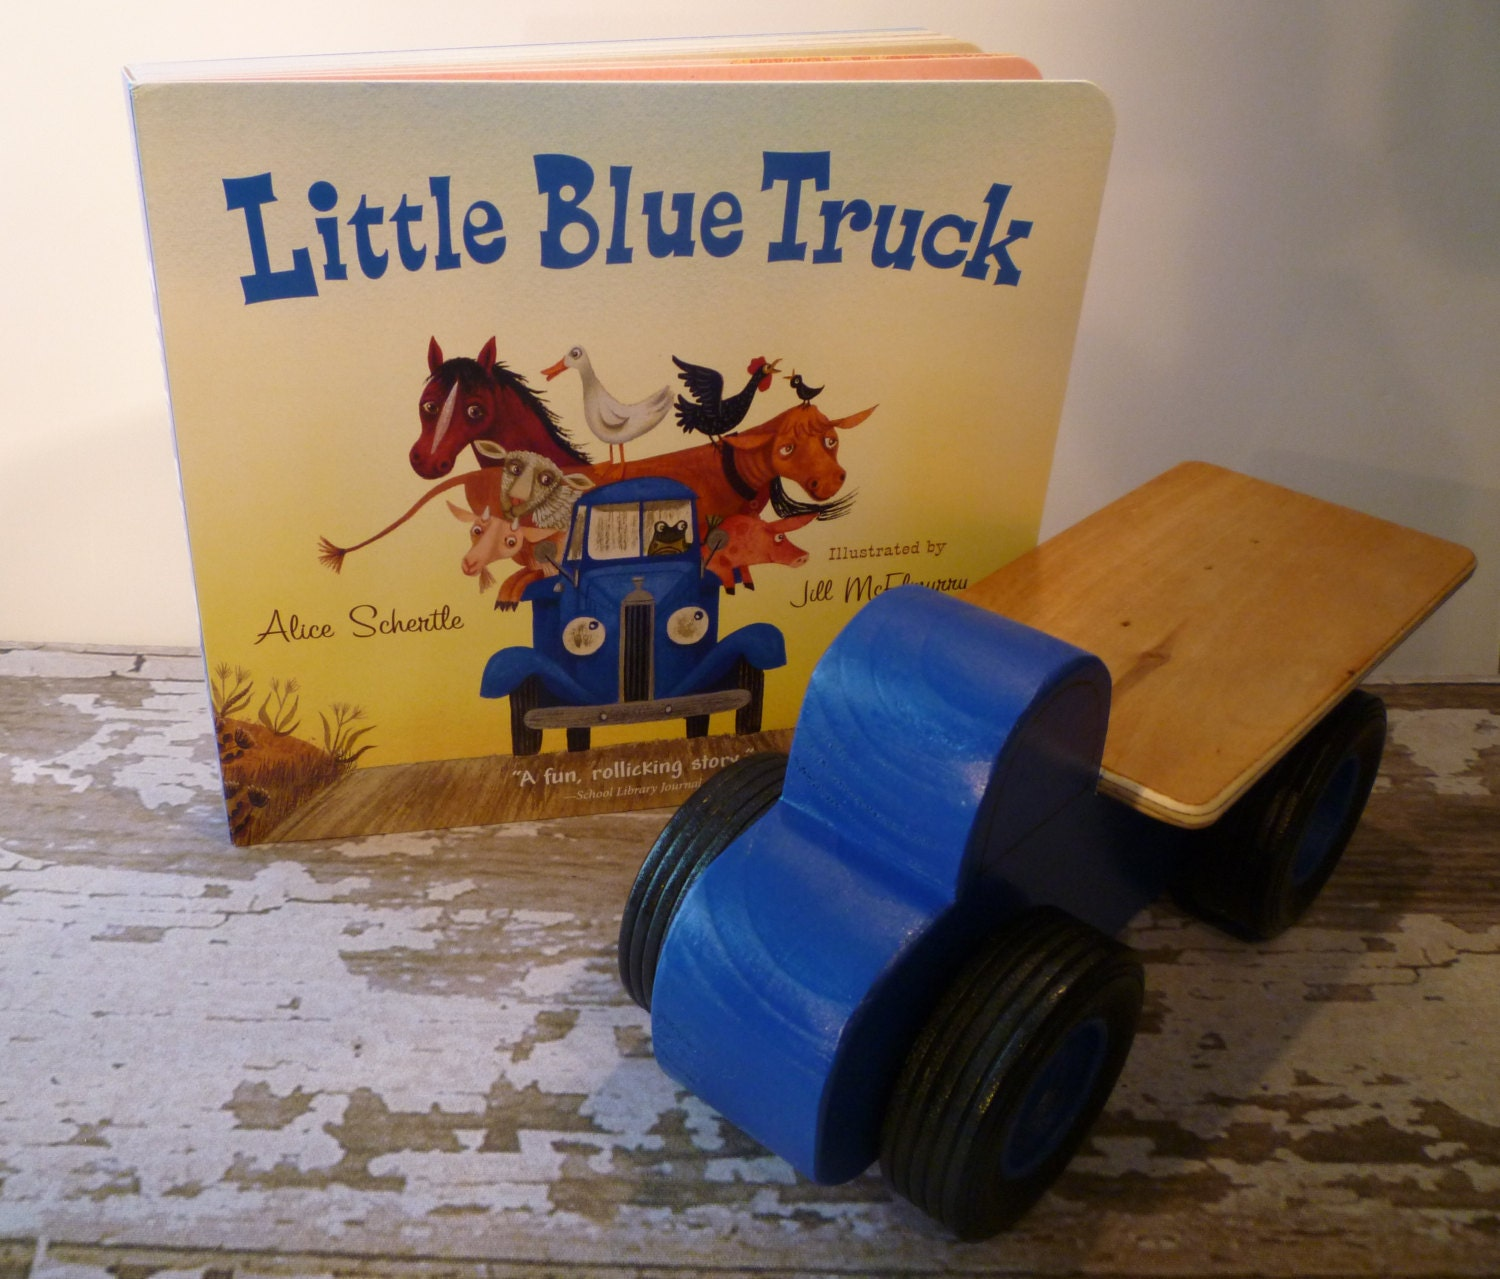 Toy Blue Flatbed Truck And Little Blue Truck Book